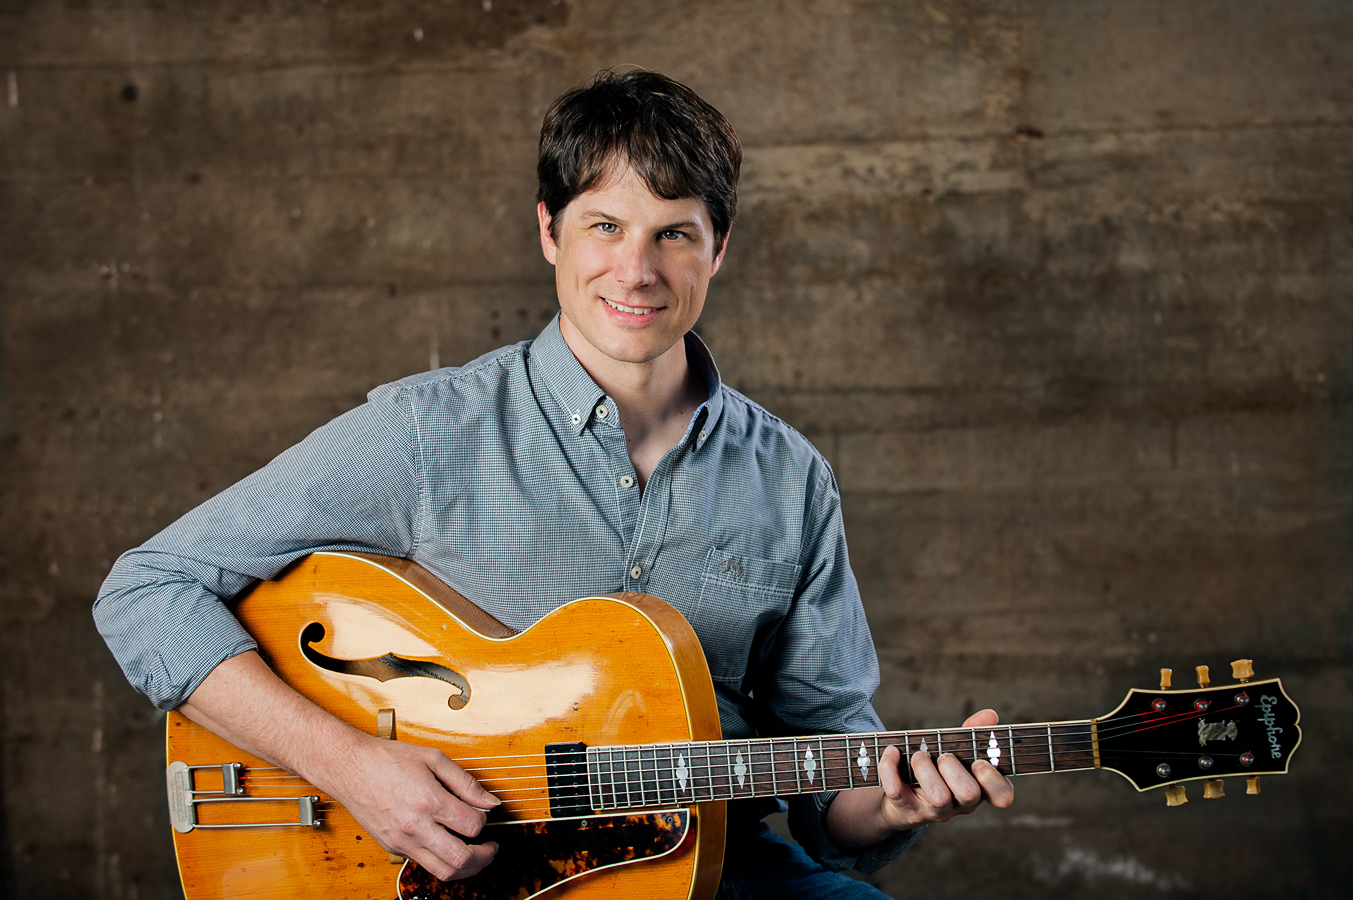 Neil Mattson is a guitarist, composer, educator, and the founder of Montavilla Guitar Studio.